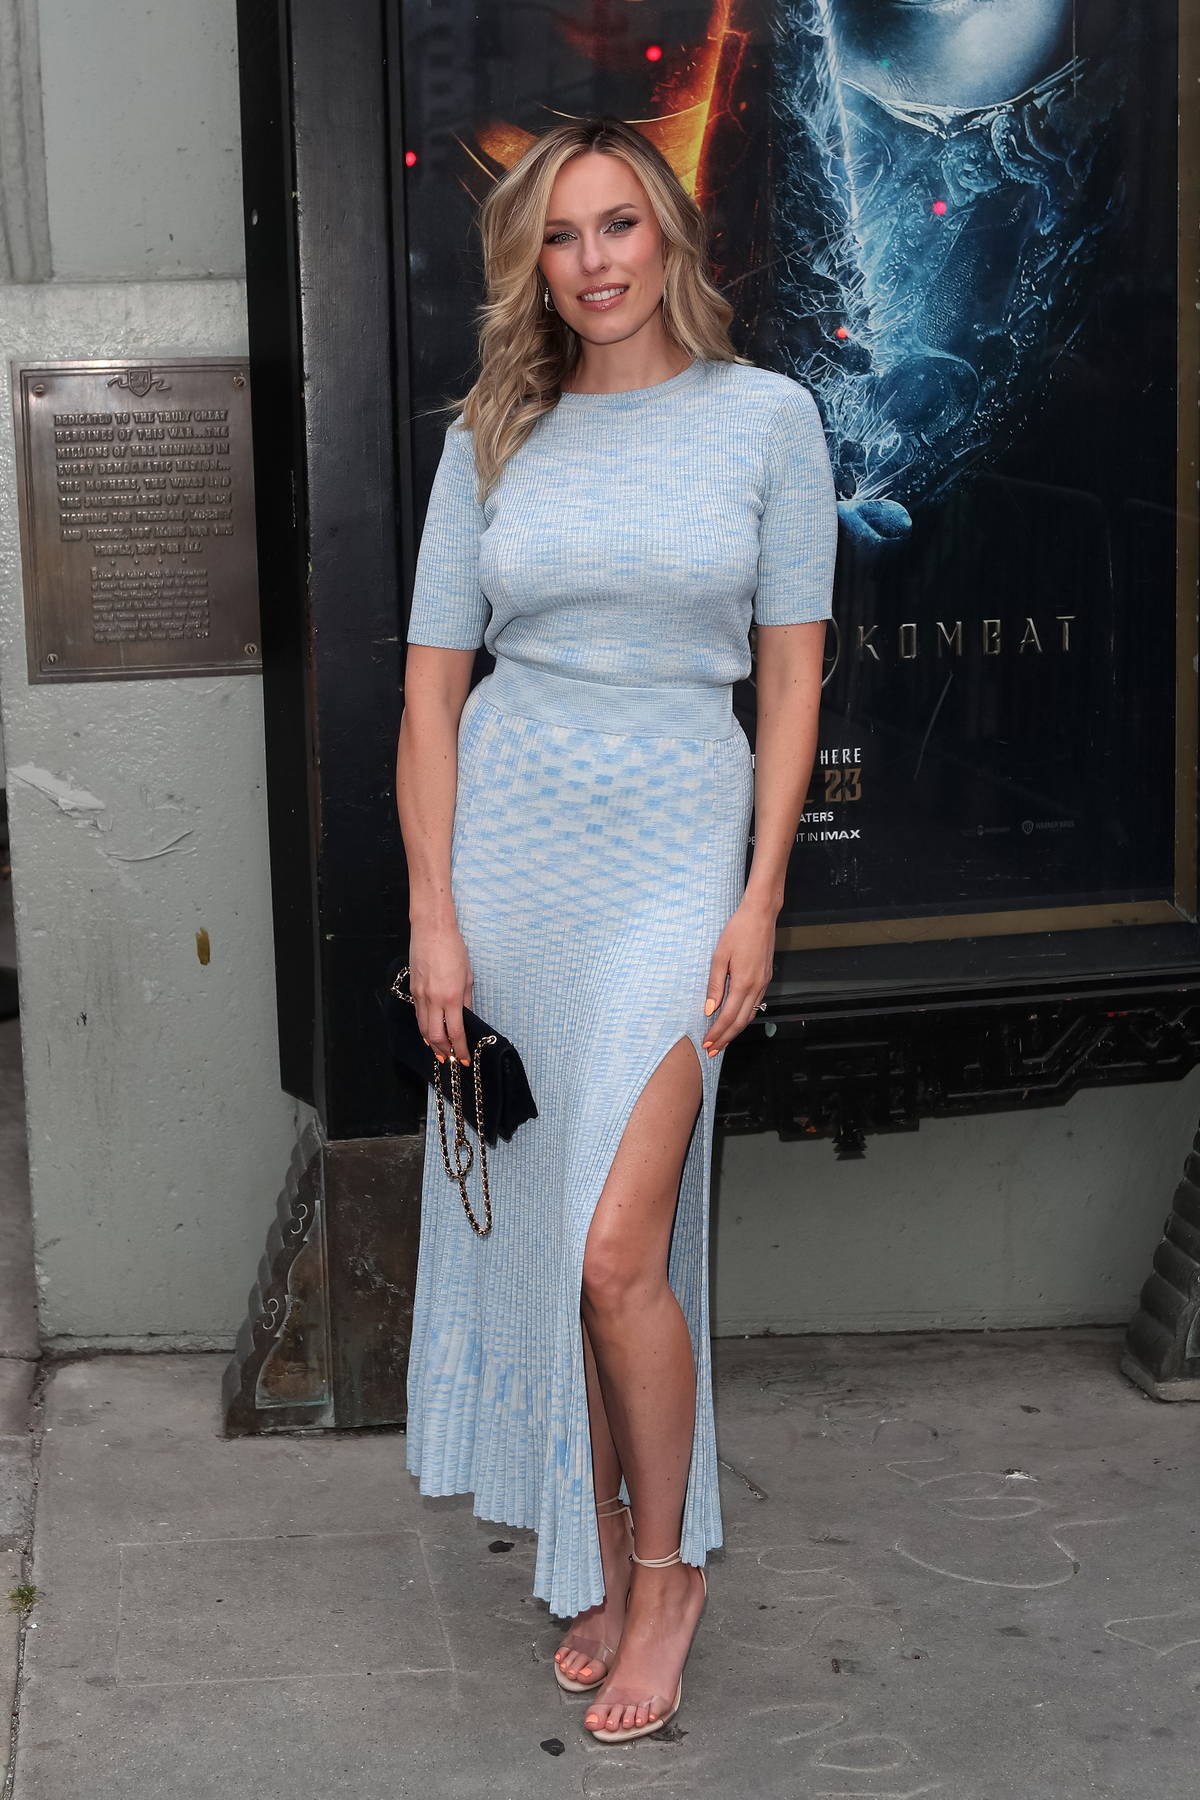 Jessica McNamee attends a special screening of 'Mortal Kombat' at TCL Theatre in Los Angeles